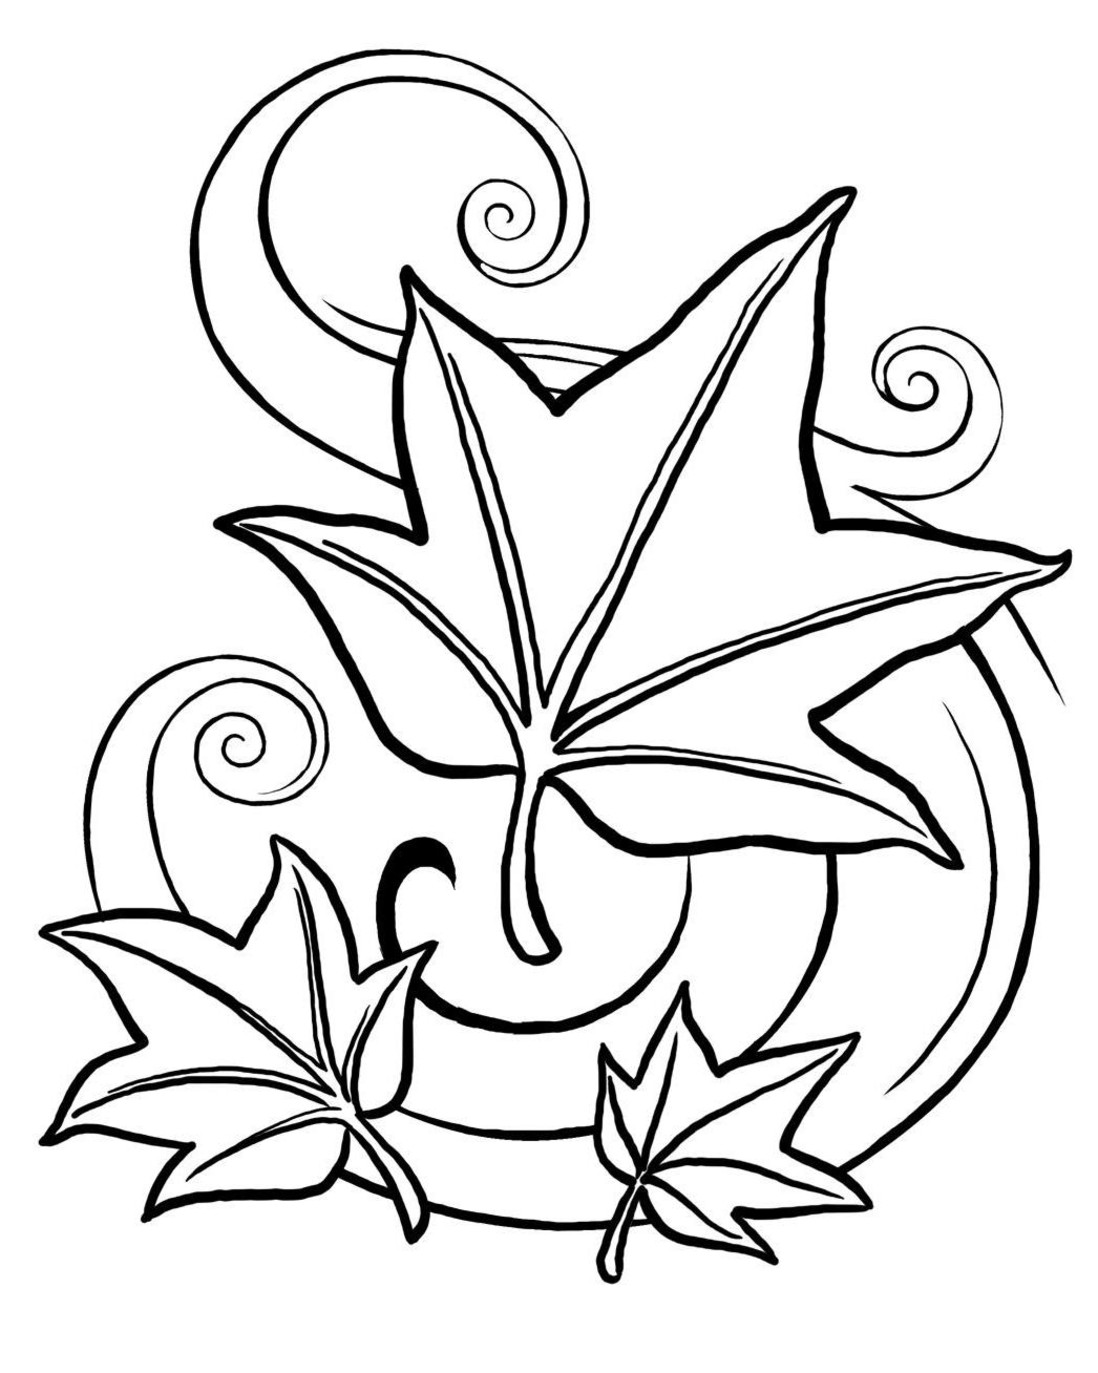 free fall printable coloring pages coloring town fall printable free pages coloring